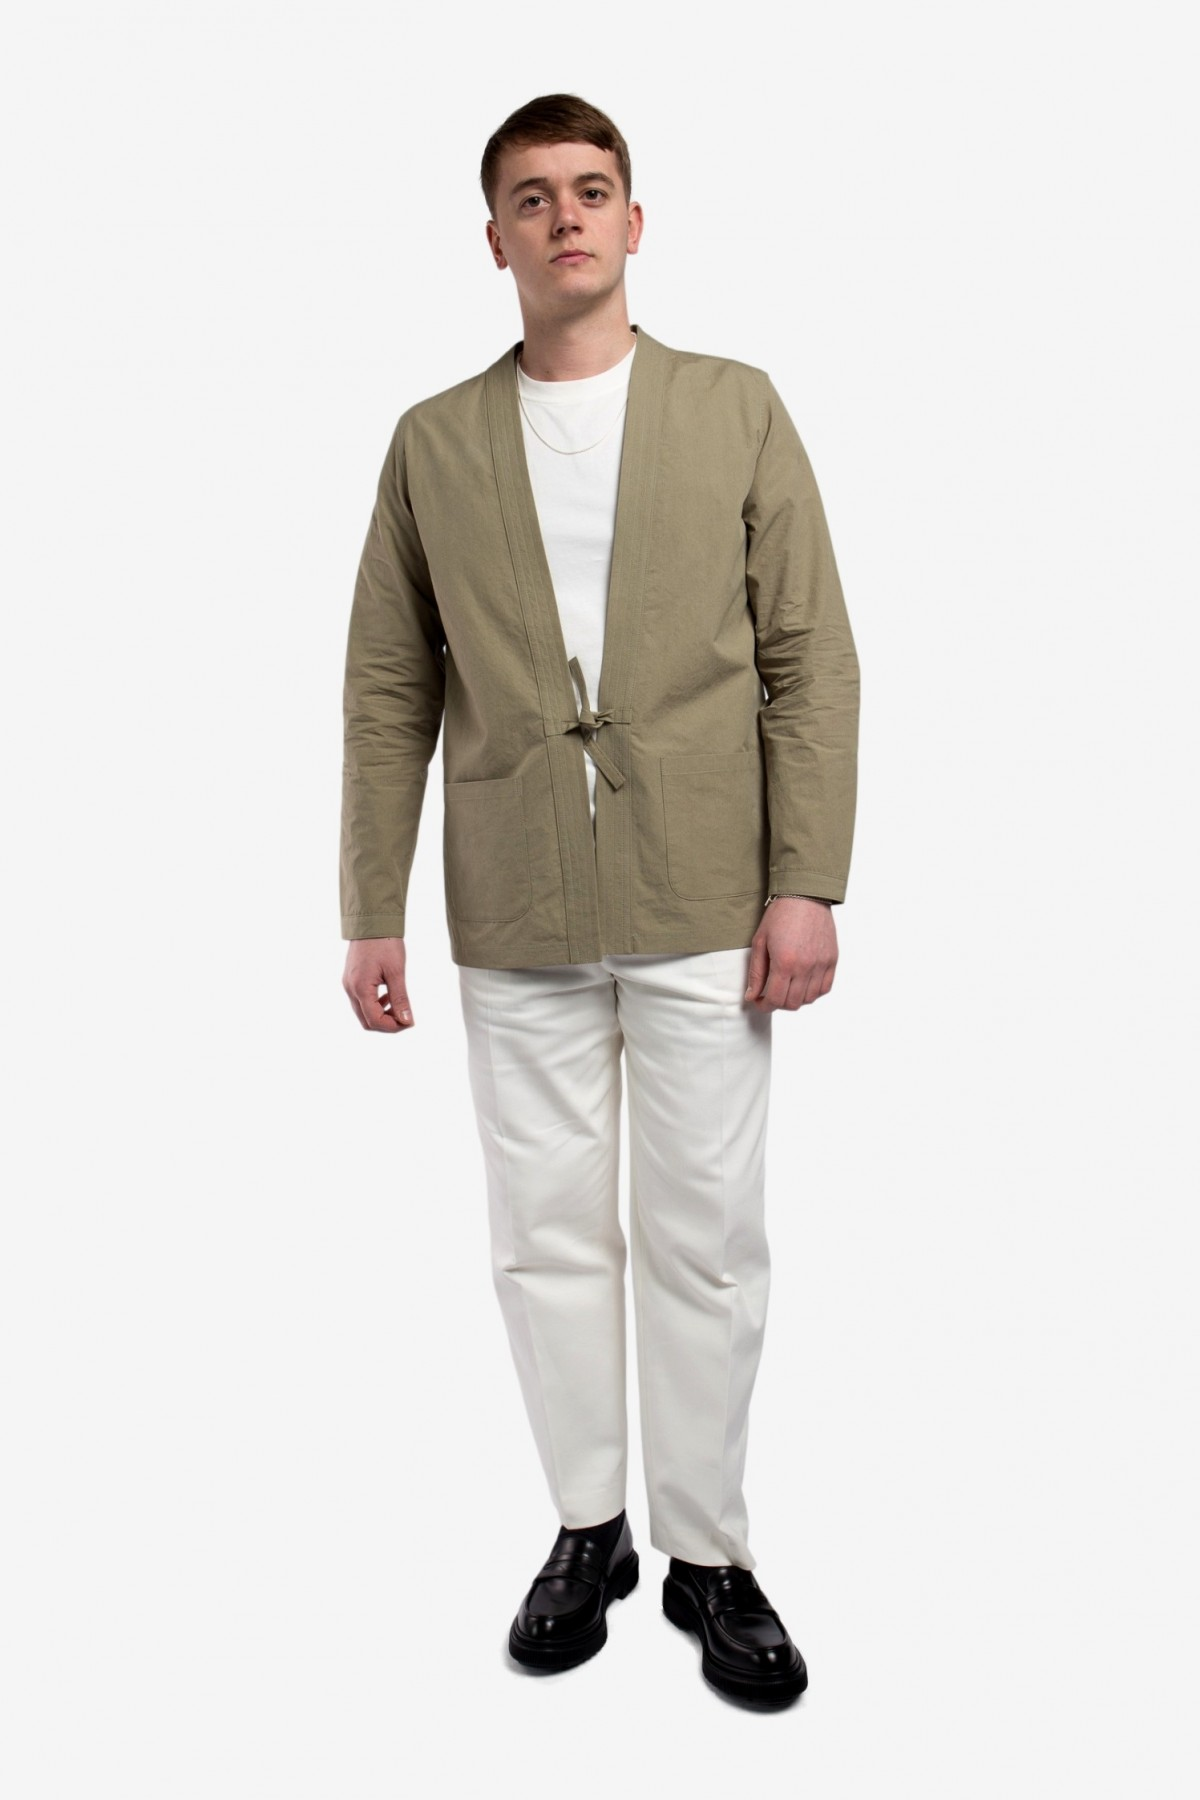 A Kind of Guise Kohaku Cardigan in Washed Olive